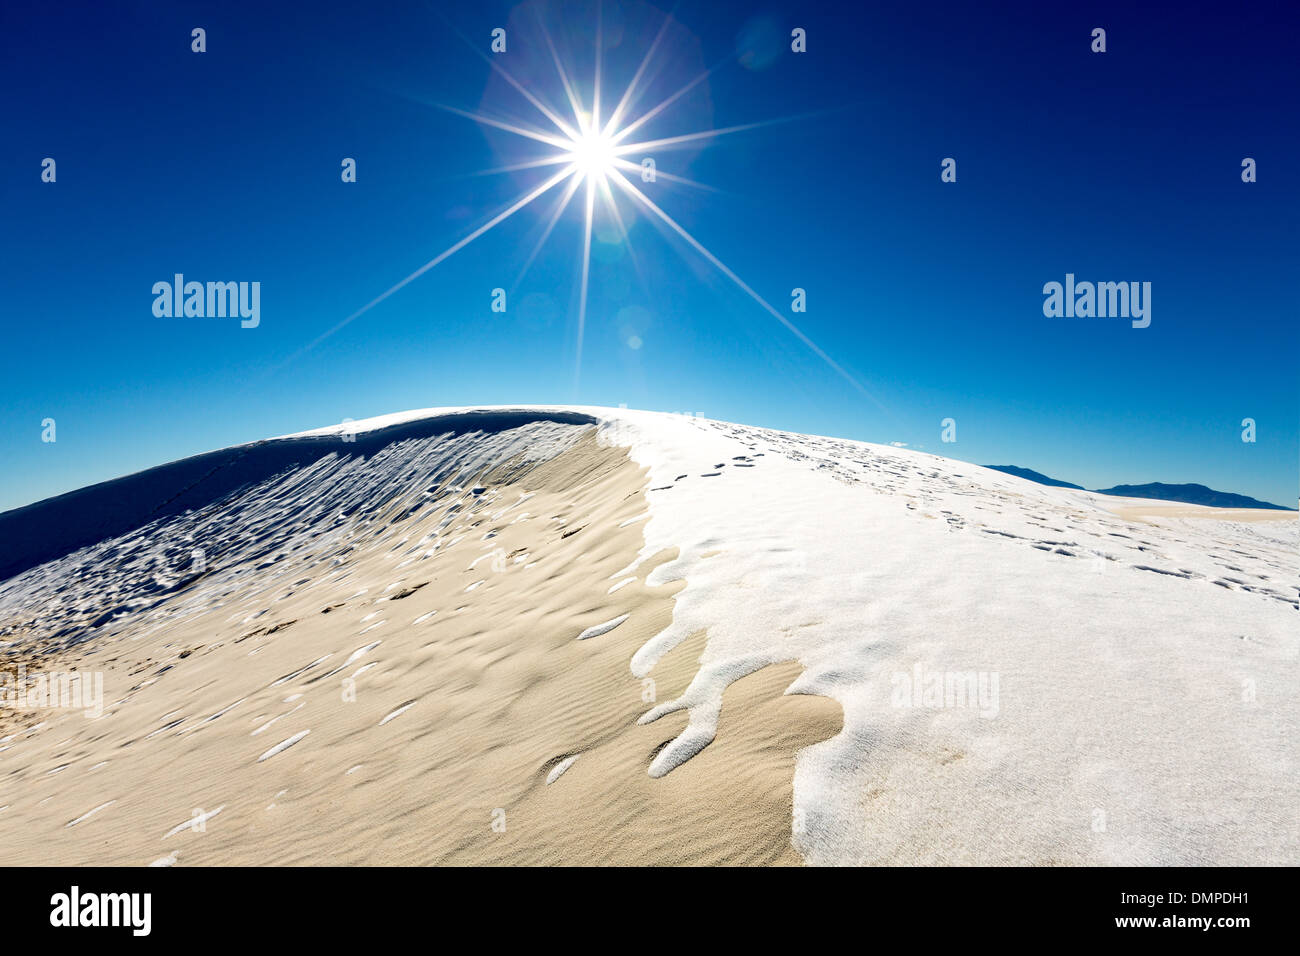 Snow in the desert of White Sands, New Mexico - Stock Image